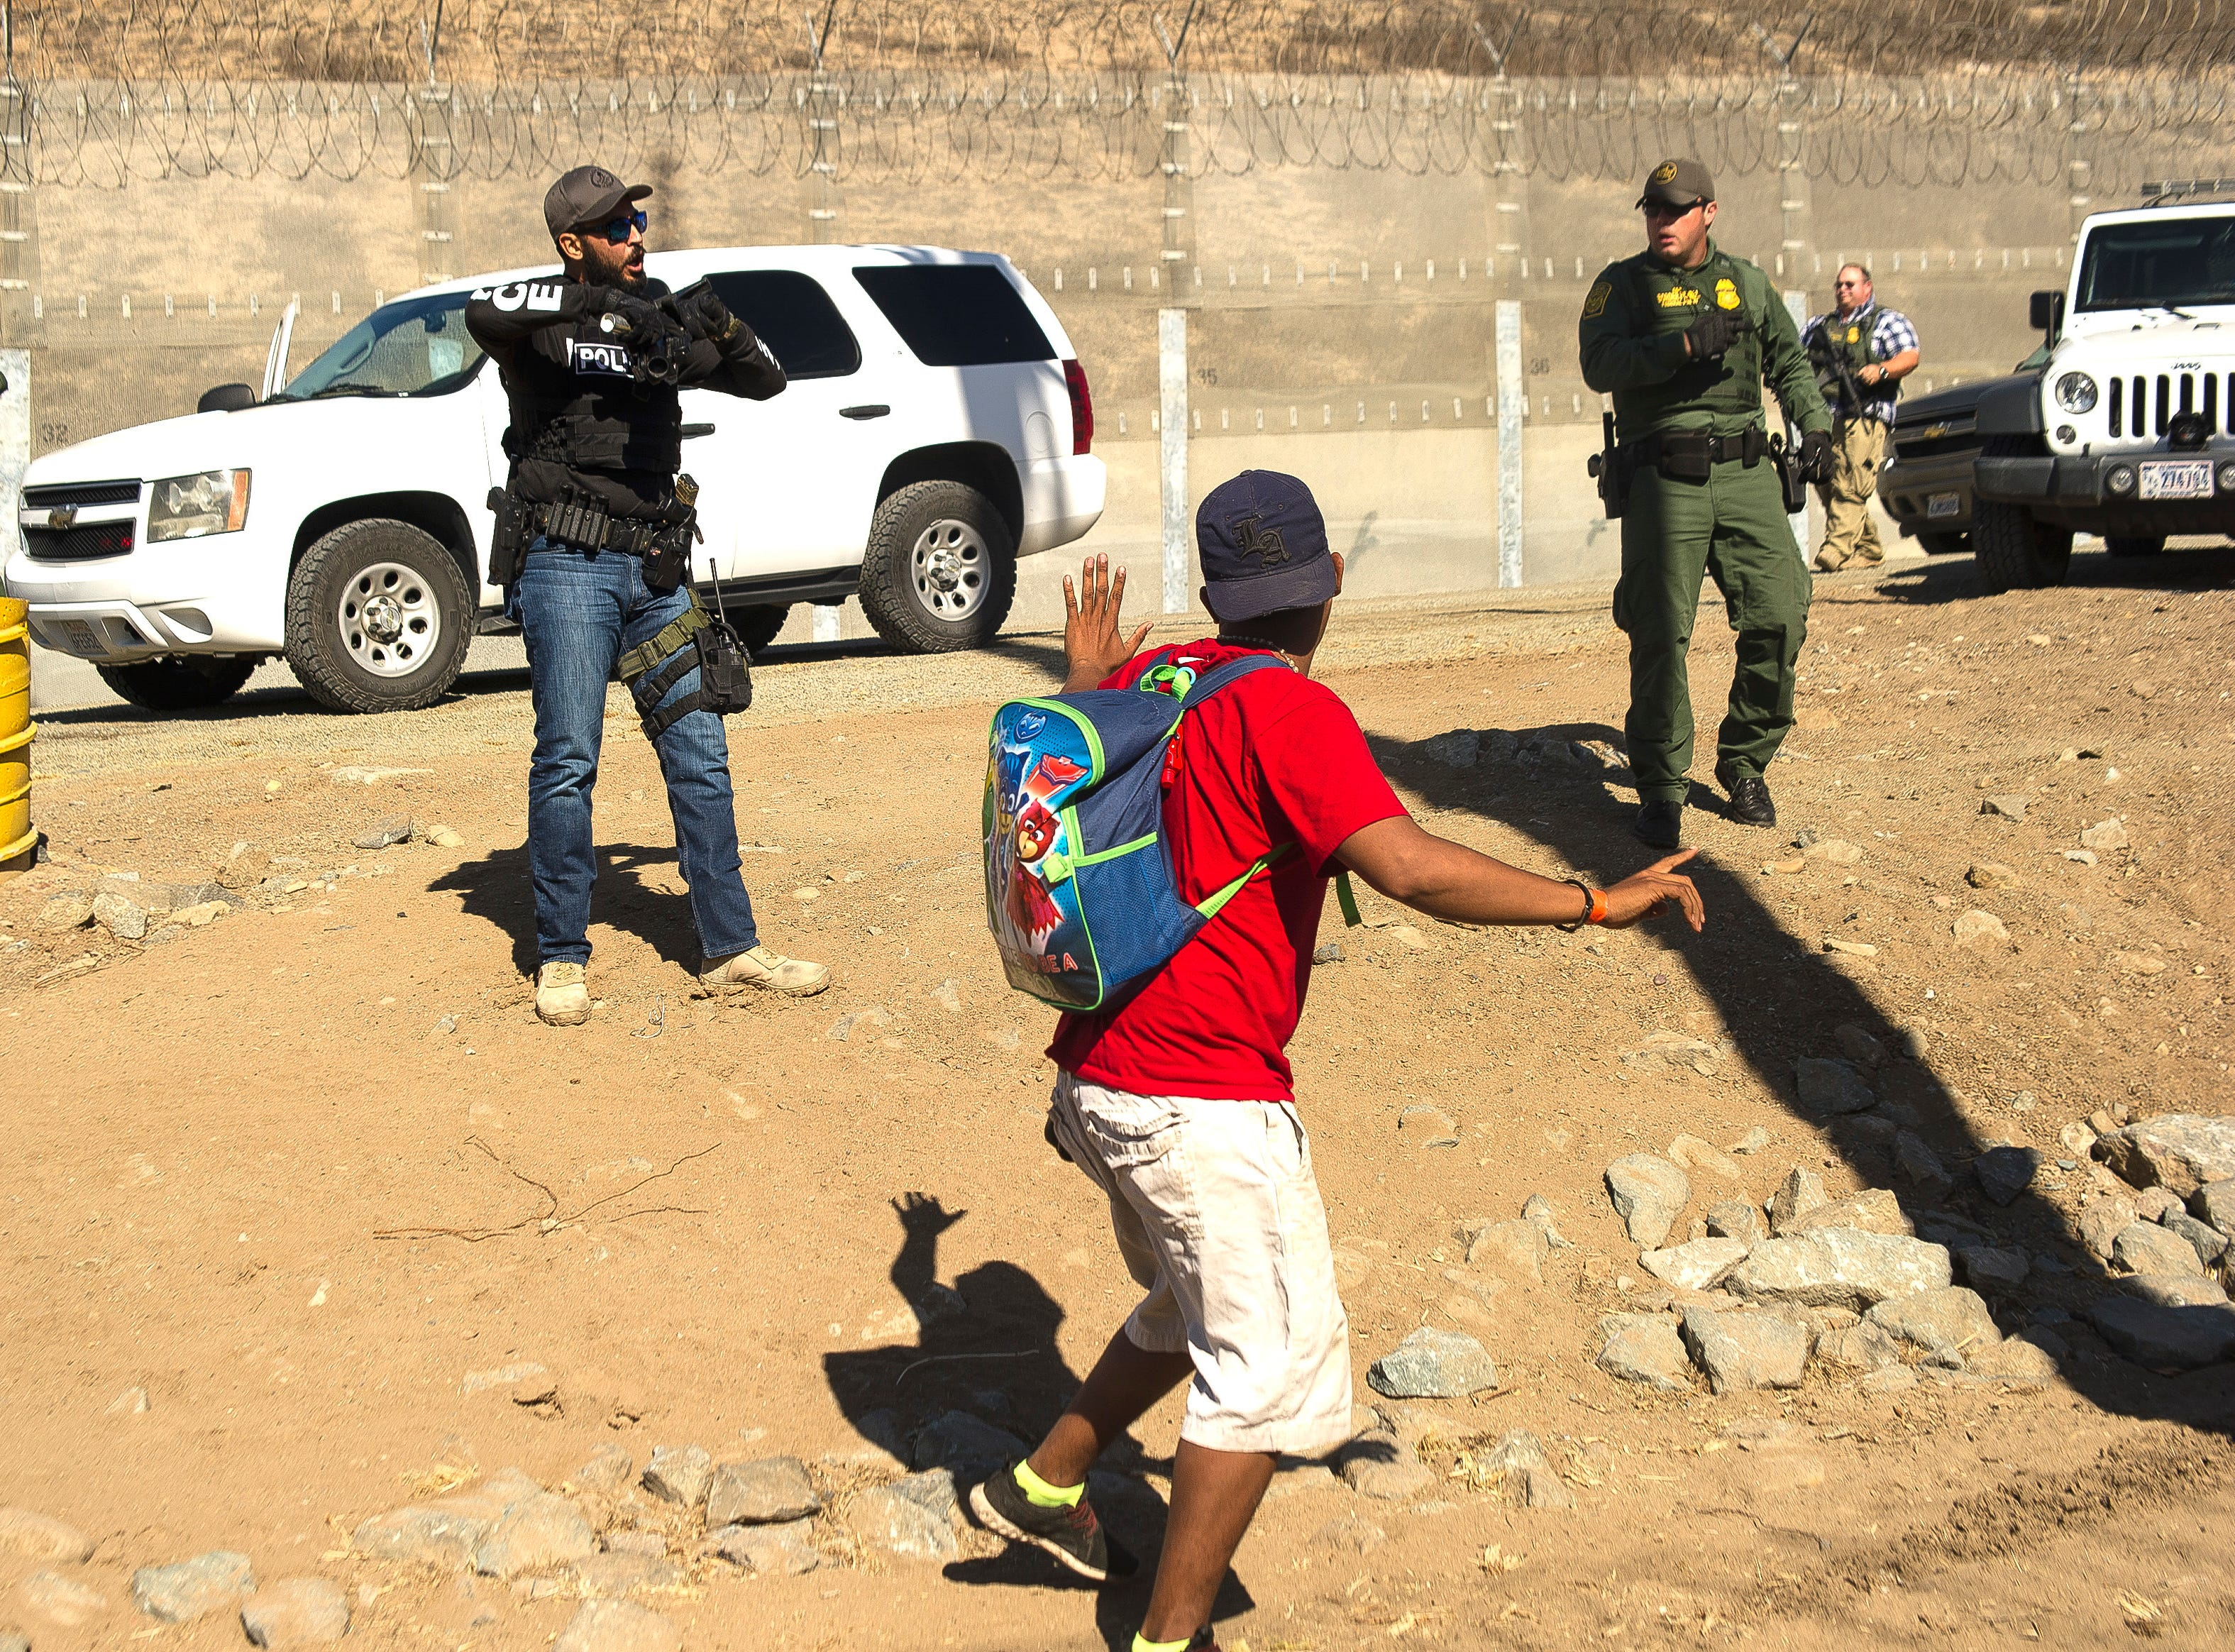 A Central American migrant is stopped by U.S. agents who order him to go back to the Mexican side of the border, after a group of migrants got past Mexican police at the Chaparral crossing in Tijuana, Mexico, Nov. 25, 2018, at the border with San Ysidro, California. The mayor of Tijuana has declared a humanitarian crisis in his border city and says that he has asked the United Nations for aid to deal with the approximately 5,000 Central American migrants who have arrived in the city. (AP Photo/Pedro Acosta)